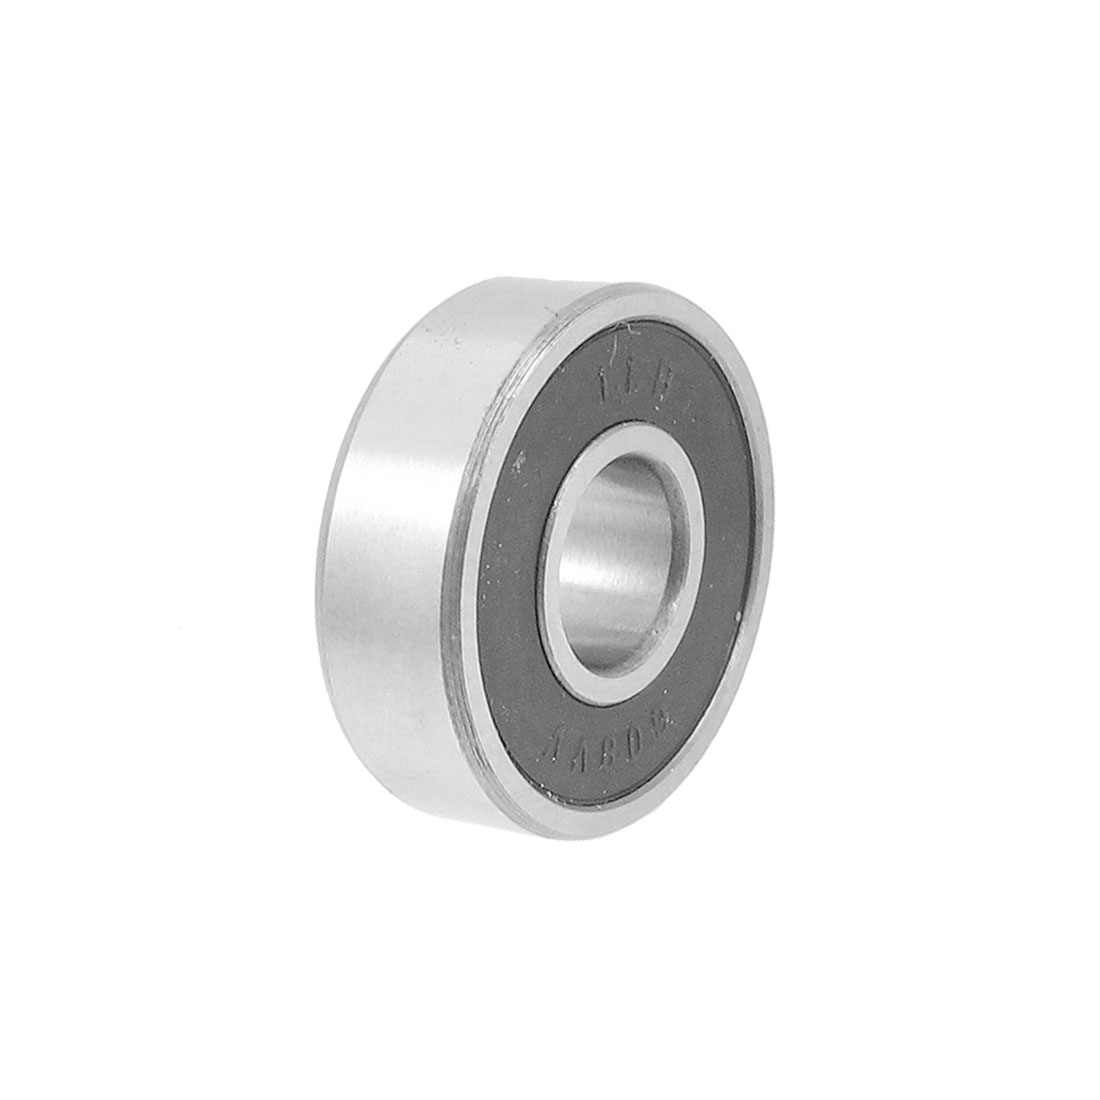 Rubber Sealed 8mm x 22mm x 7mm Deep Groove Ball Bearing for Angle Grinder 608